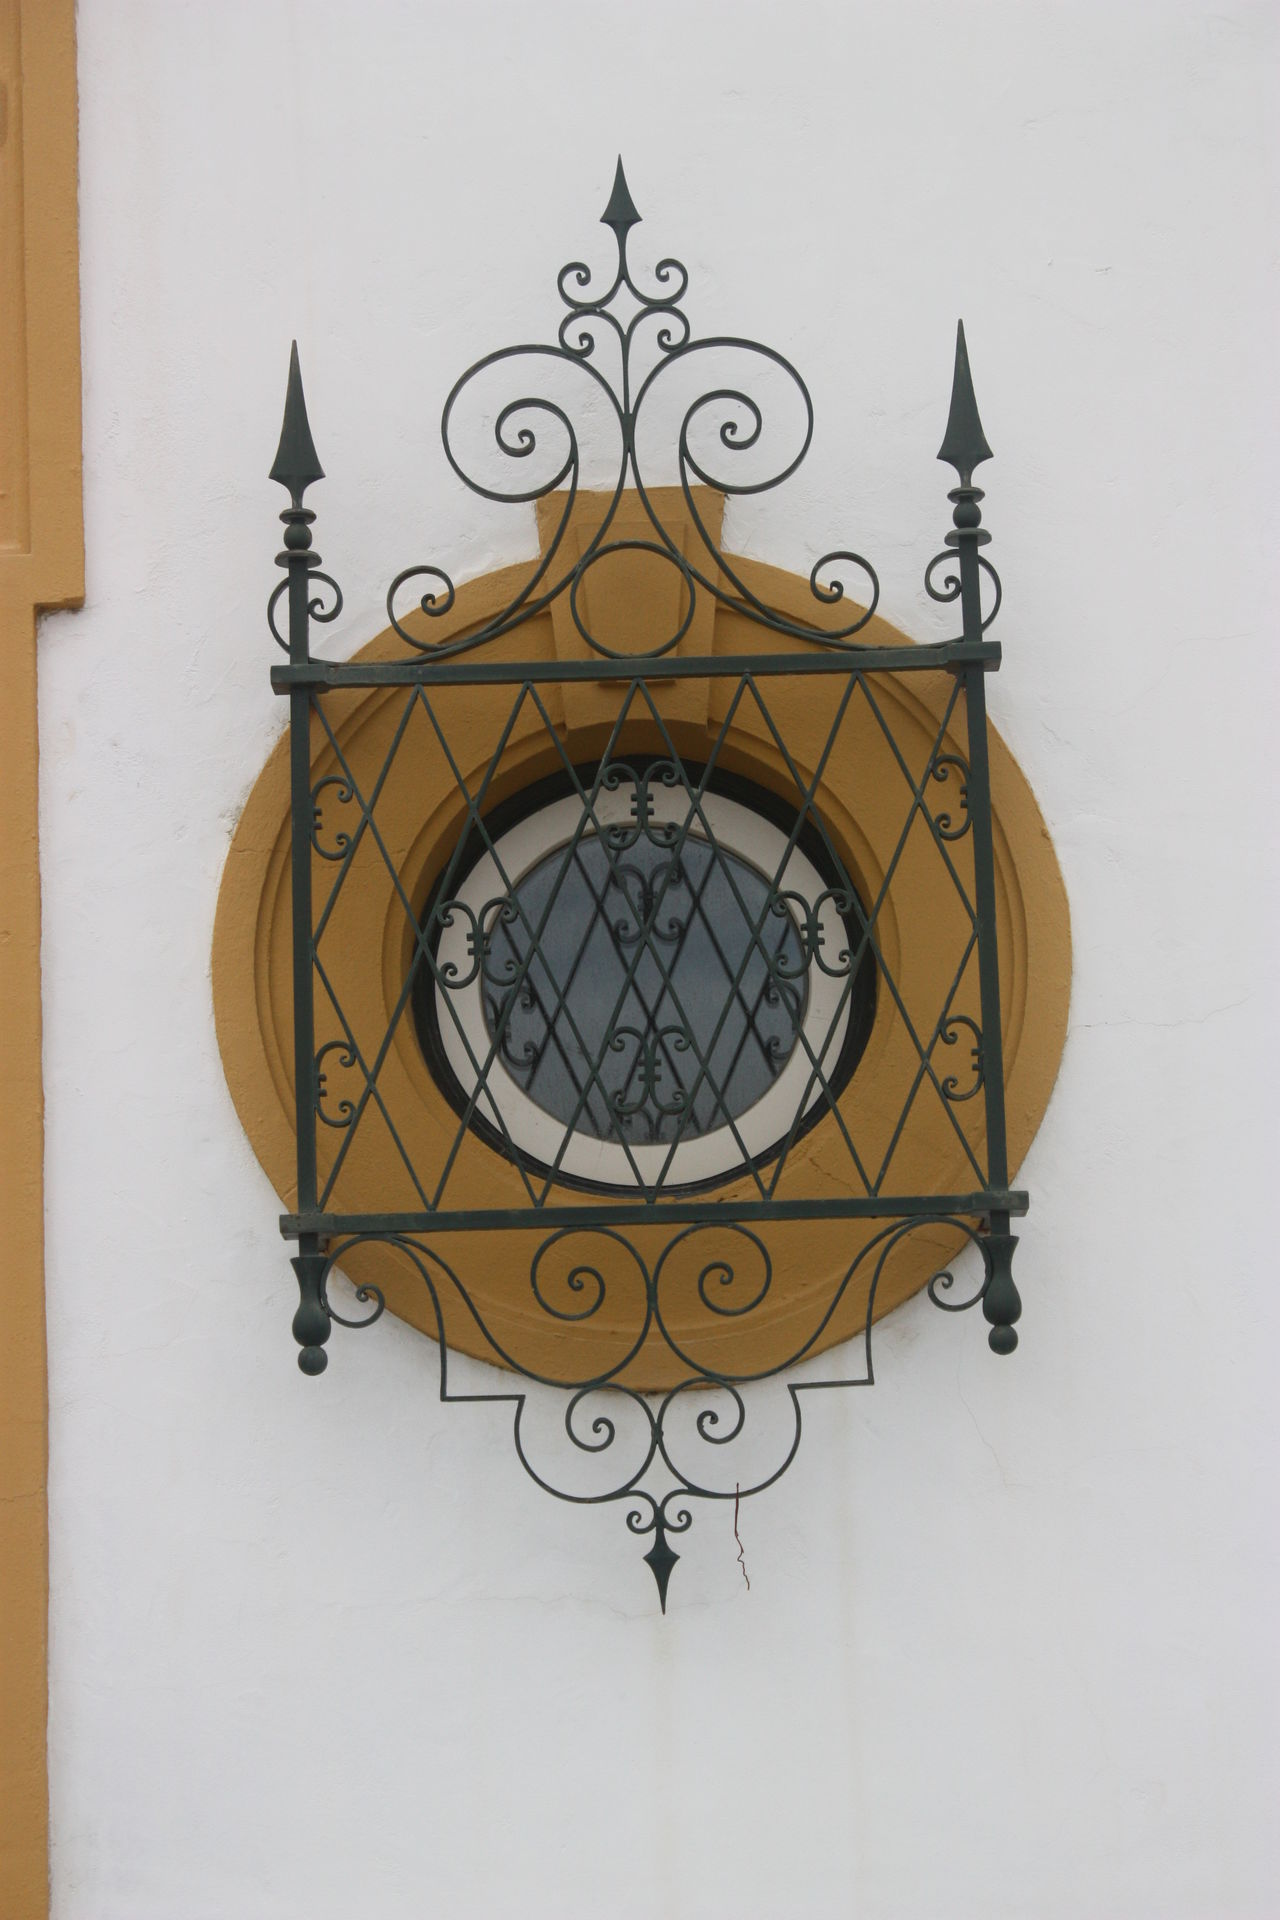 #arquitecture #ciclewindow #wood #window Art And Craft Circle Design Wall Wall - Building Feature